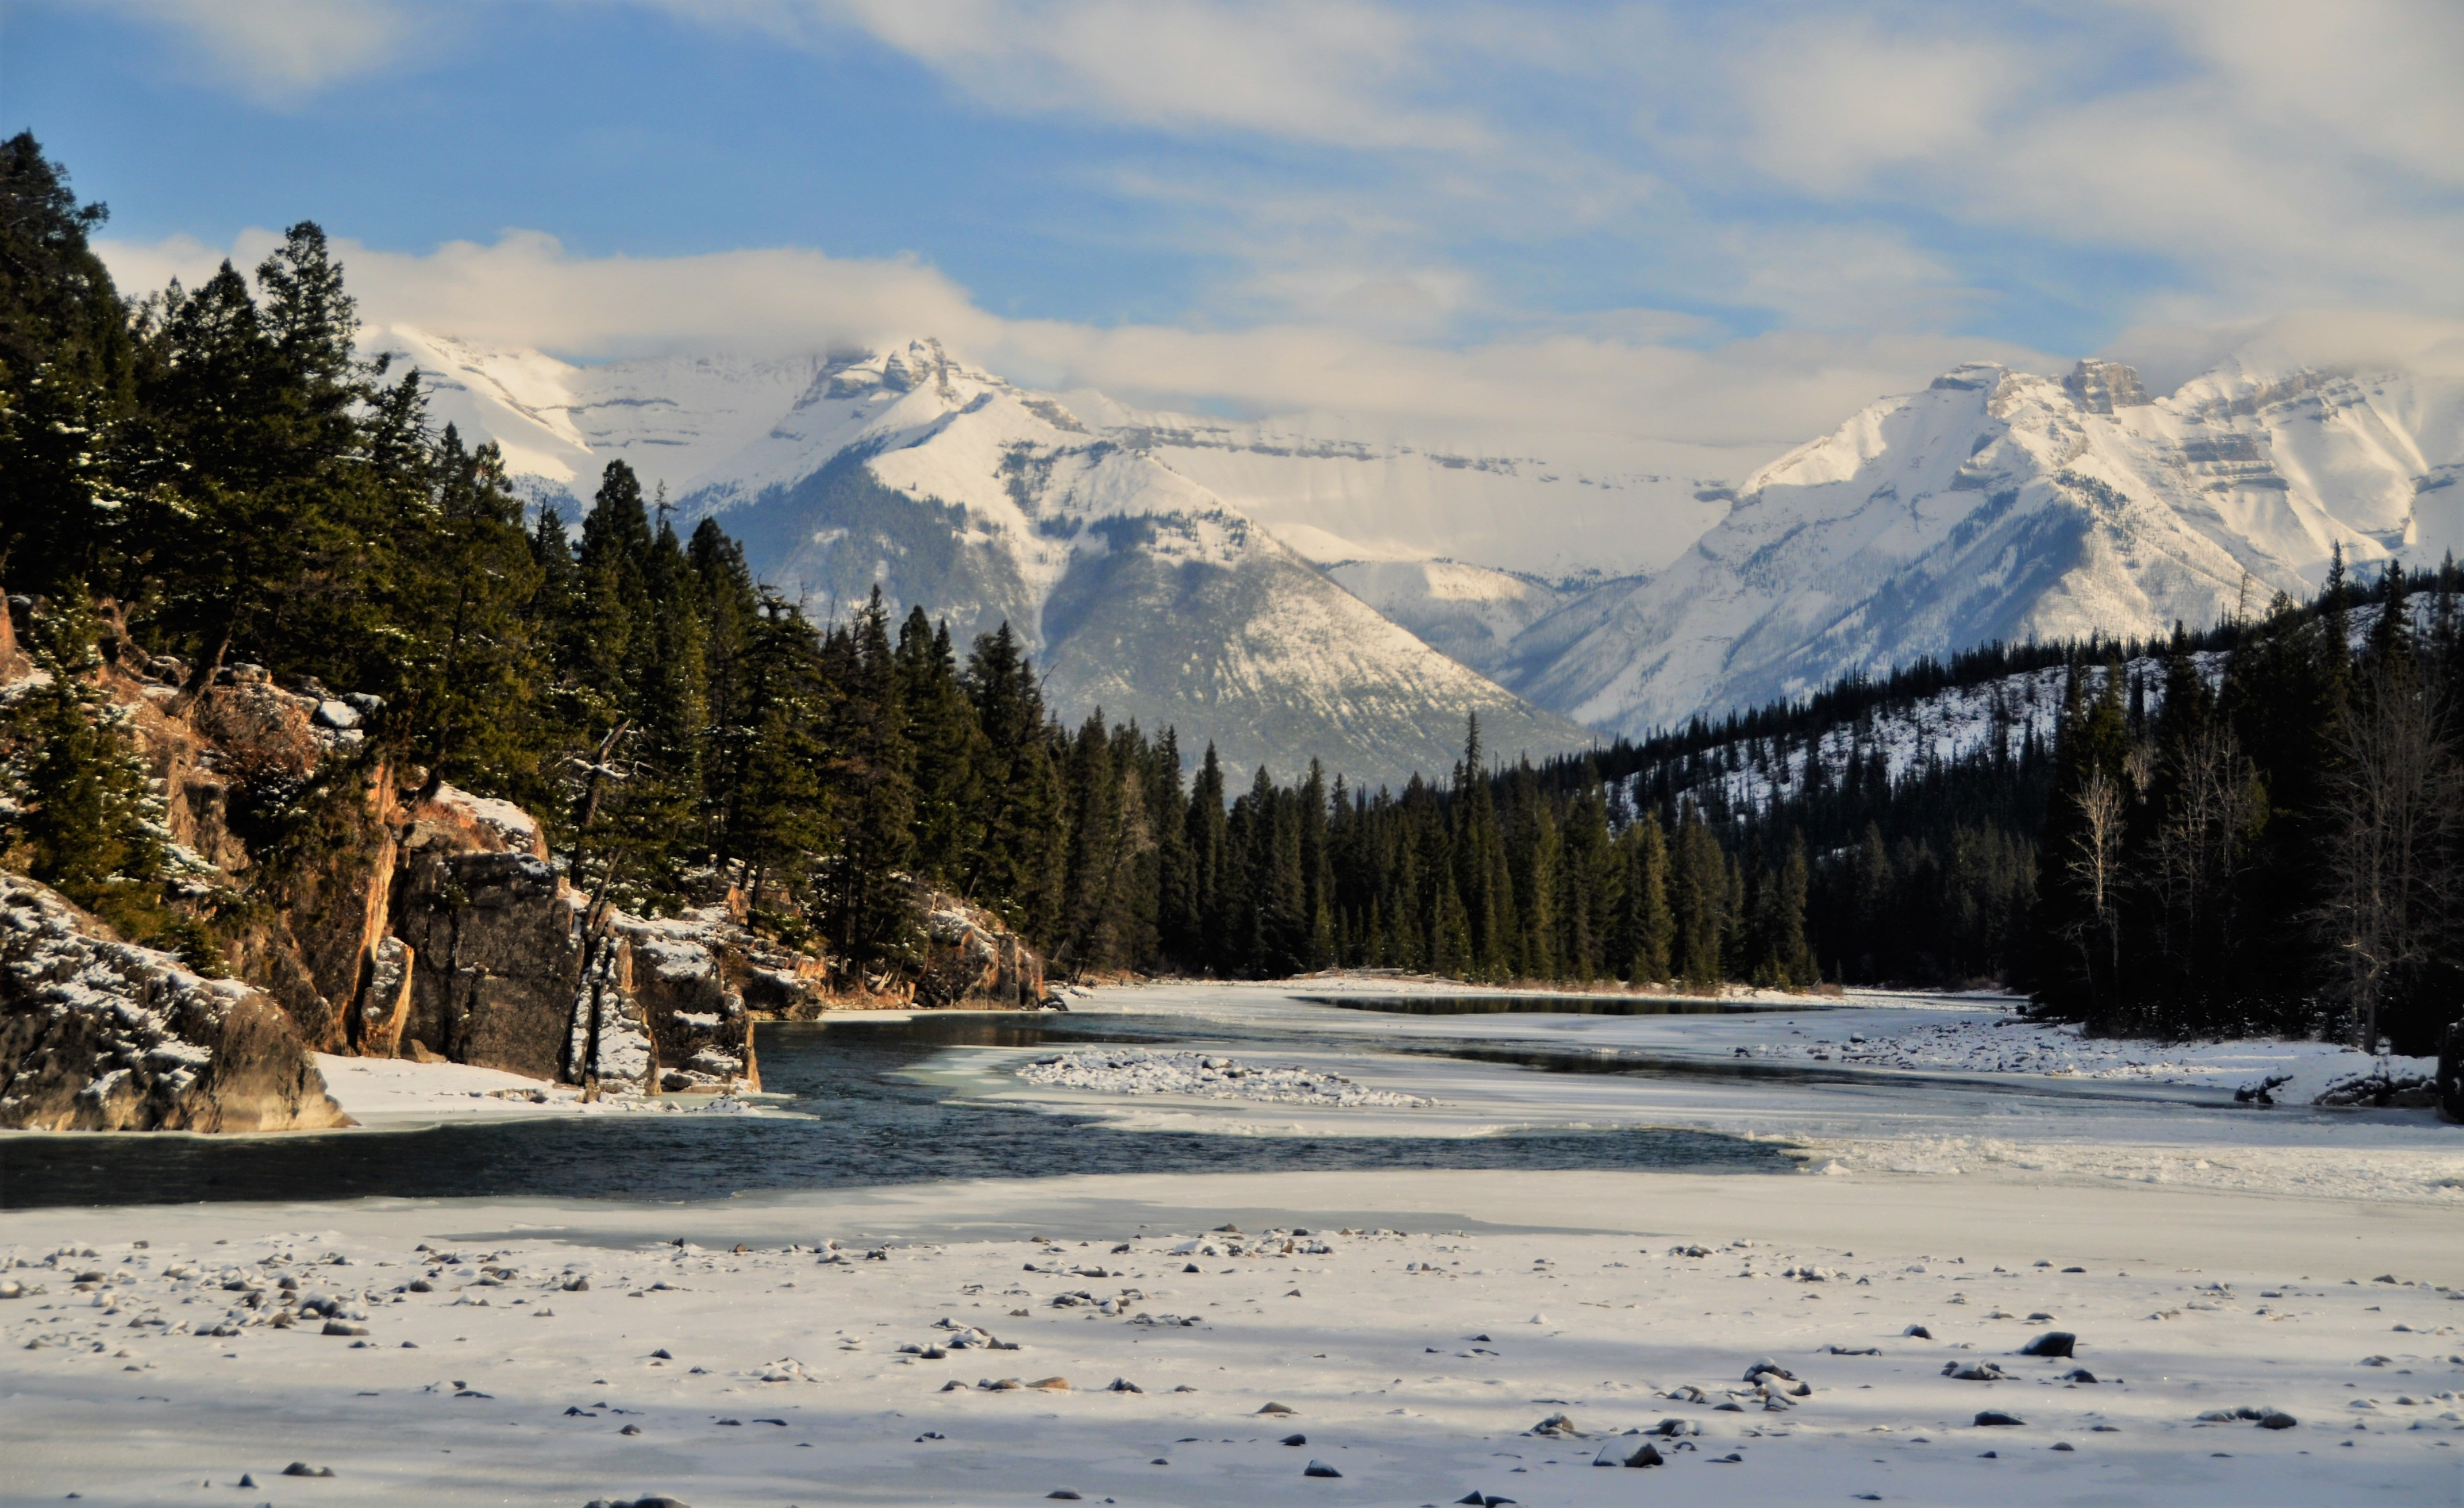 Bow River near Banff Alberta, Nov. 8-2017 - bruce witzel photo